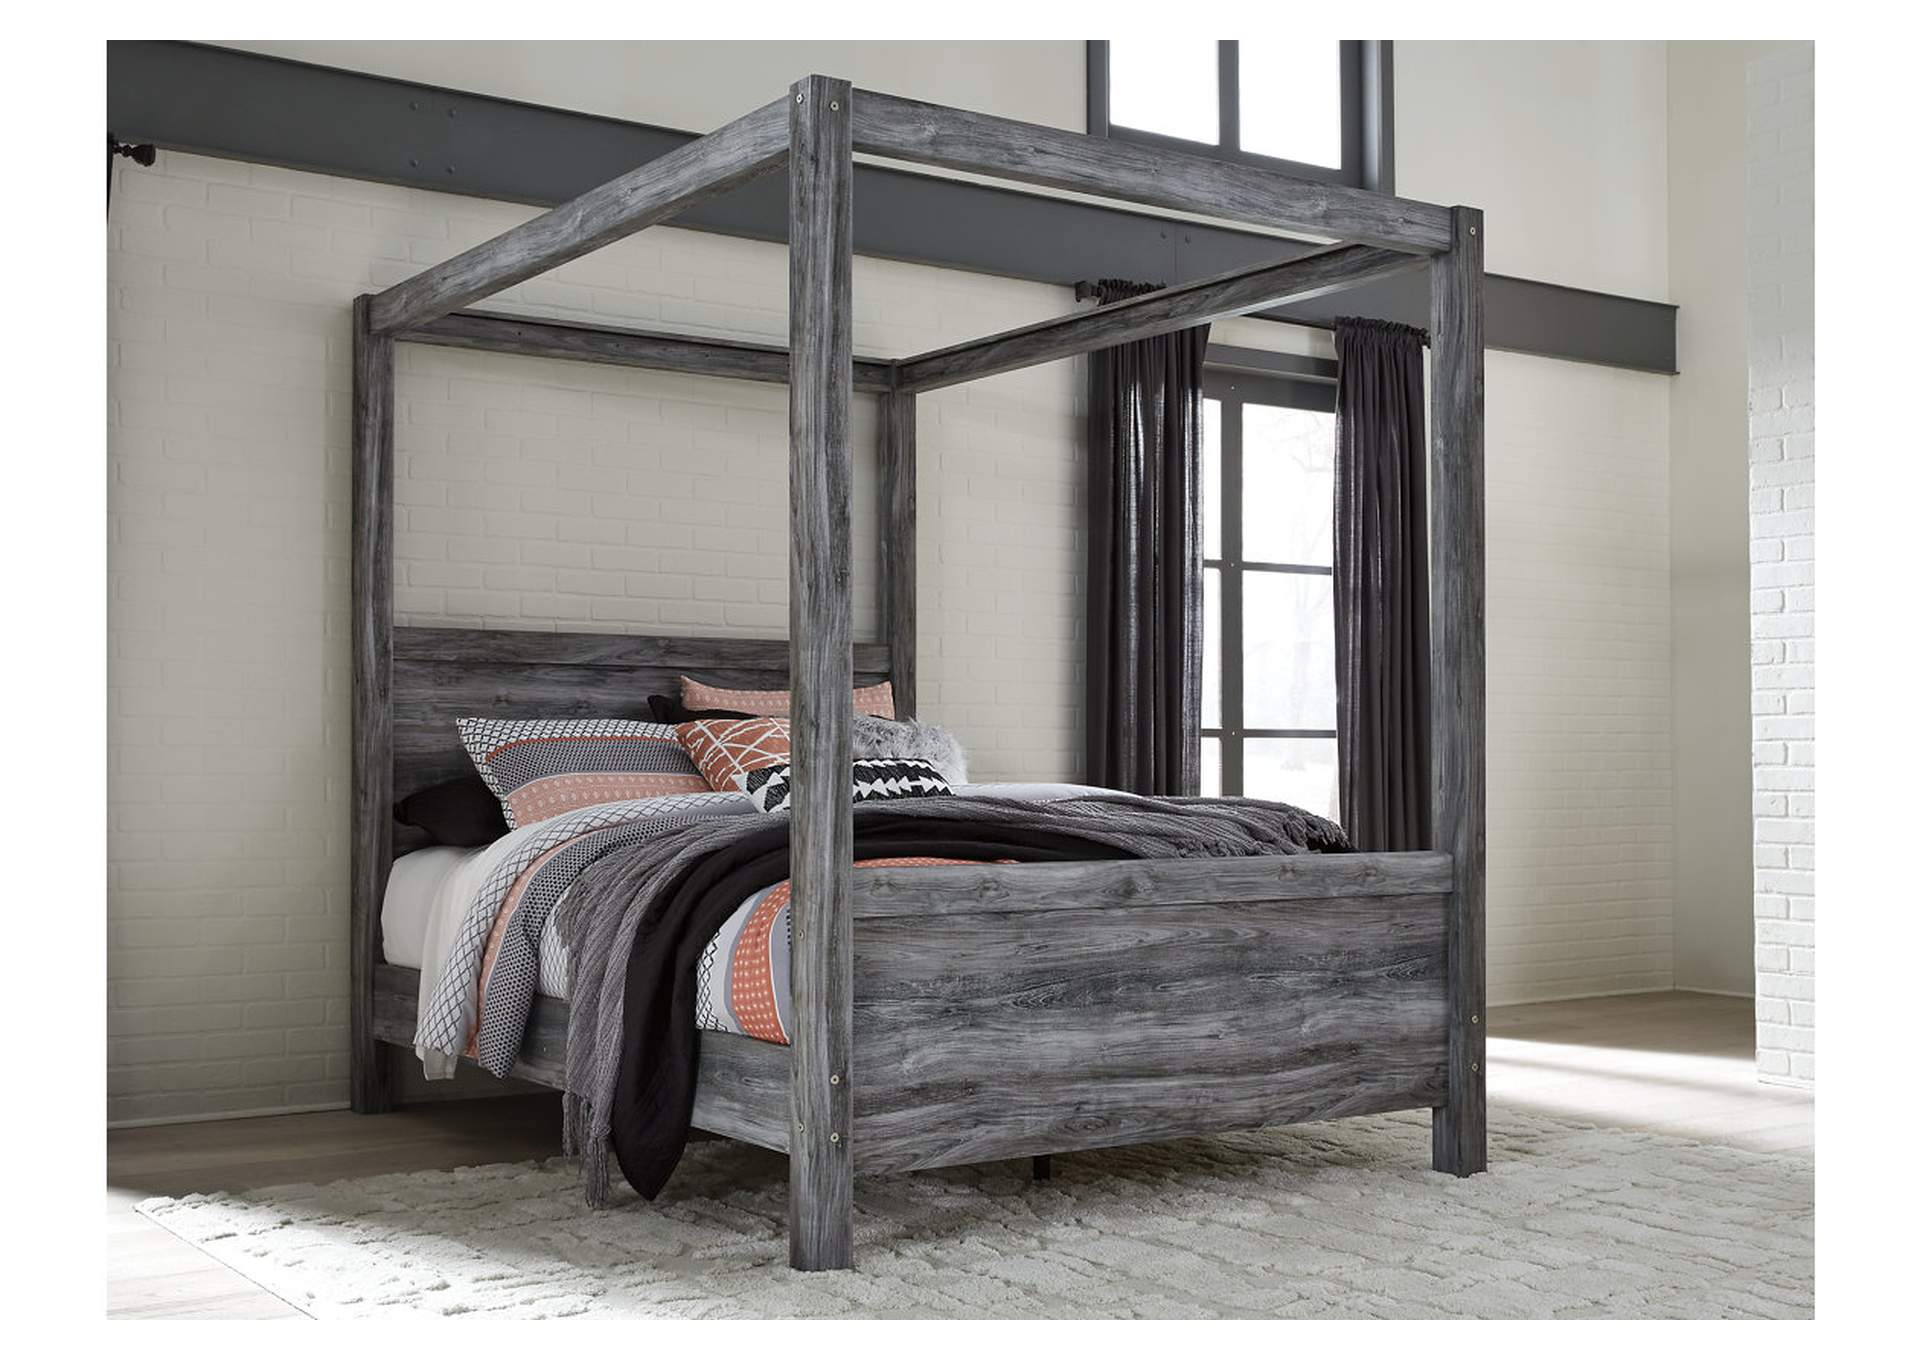 Baystorm Gray Queen Canopy Bed,Signature Design By Ashley